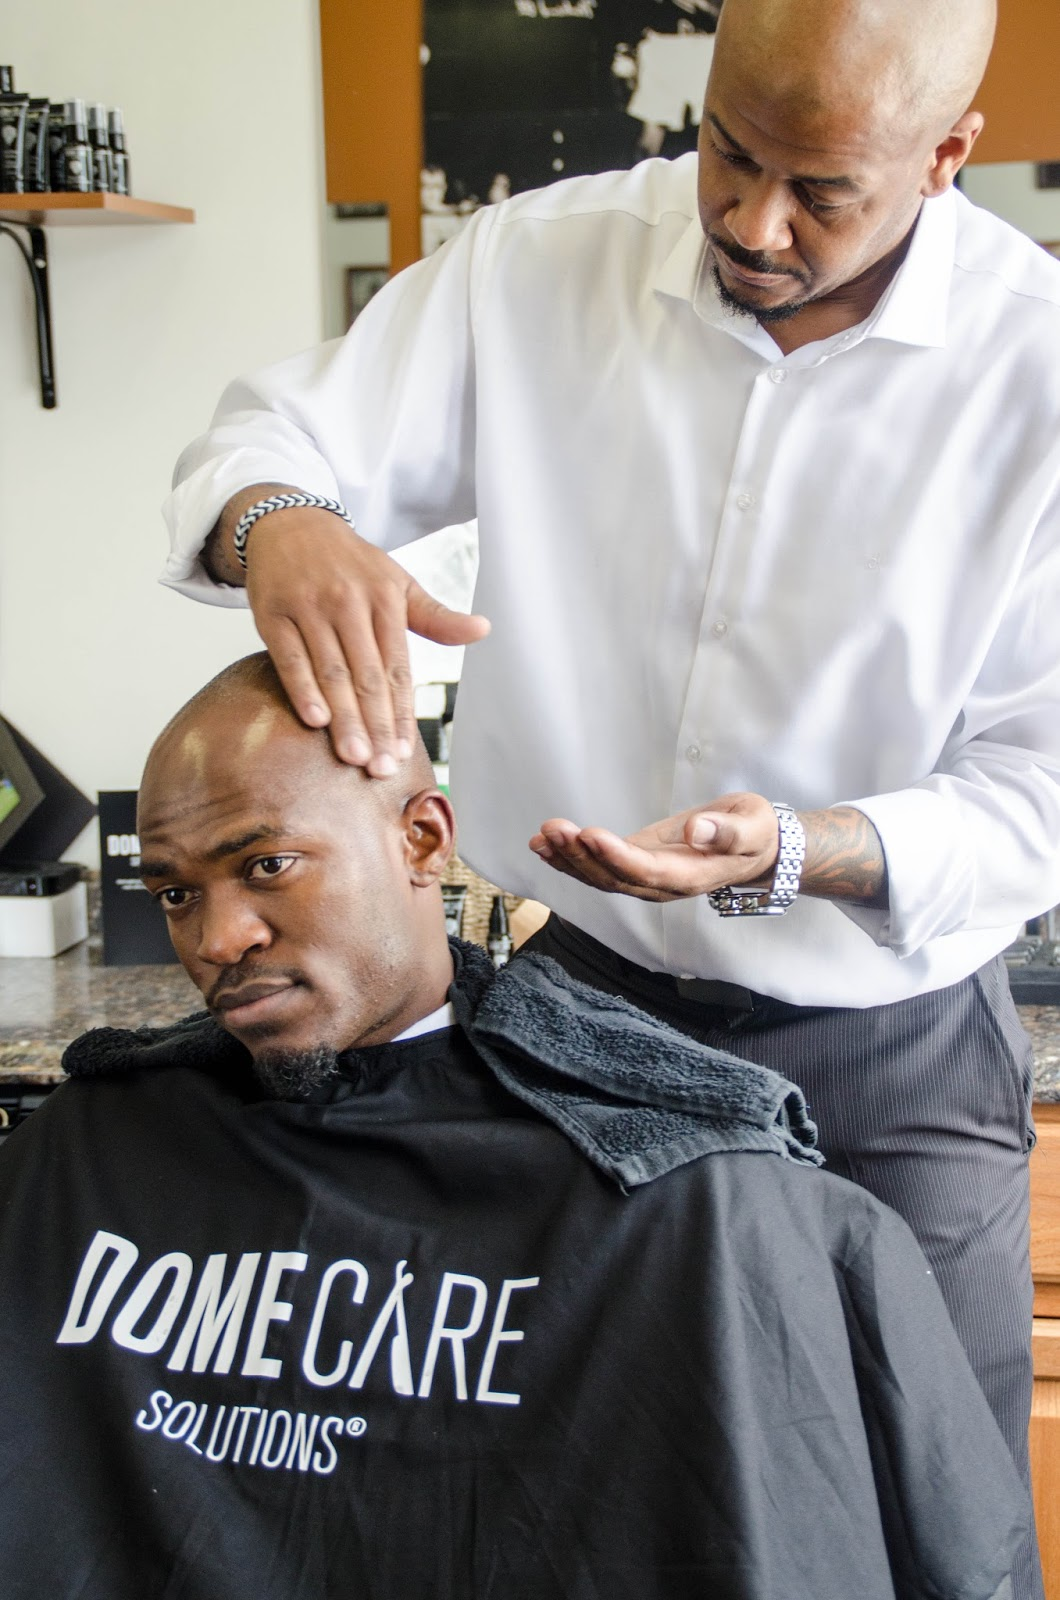 Appointments Are Recommended And Can Be Made At Topnotchbarberor  4159946699 If You Rock A Shaved Head Ask For The Domecare Solutions  Signature